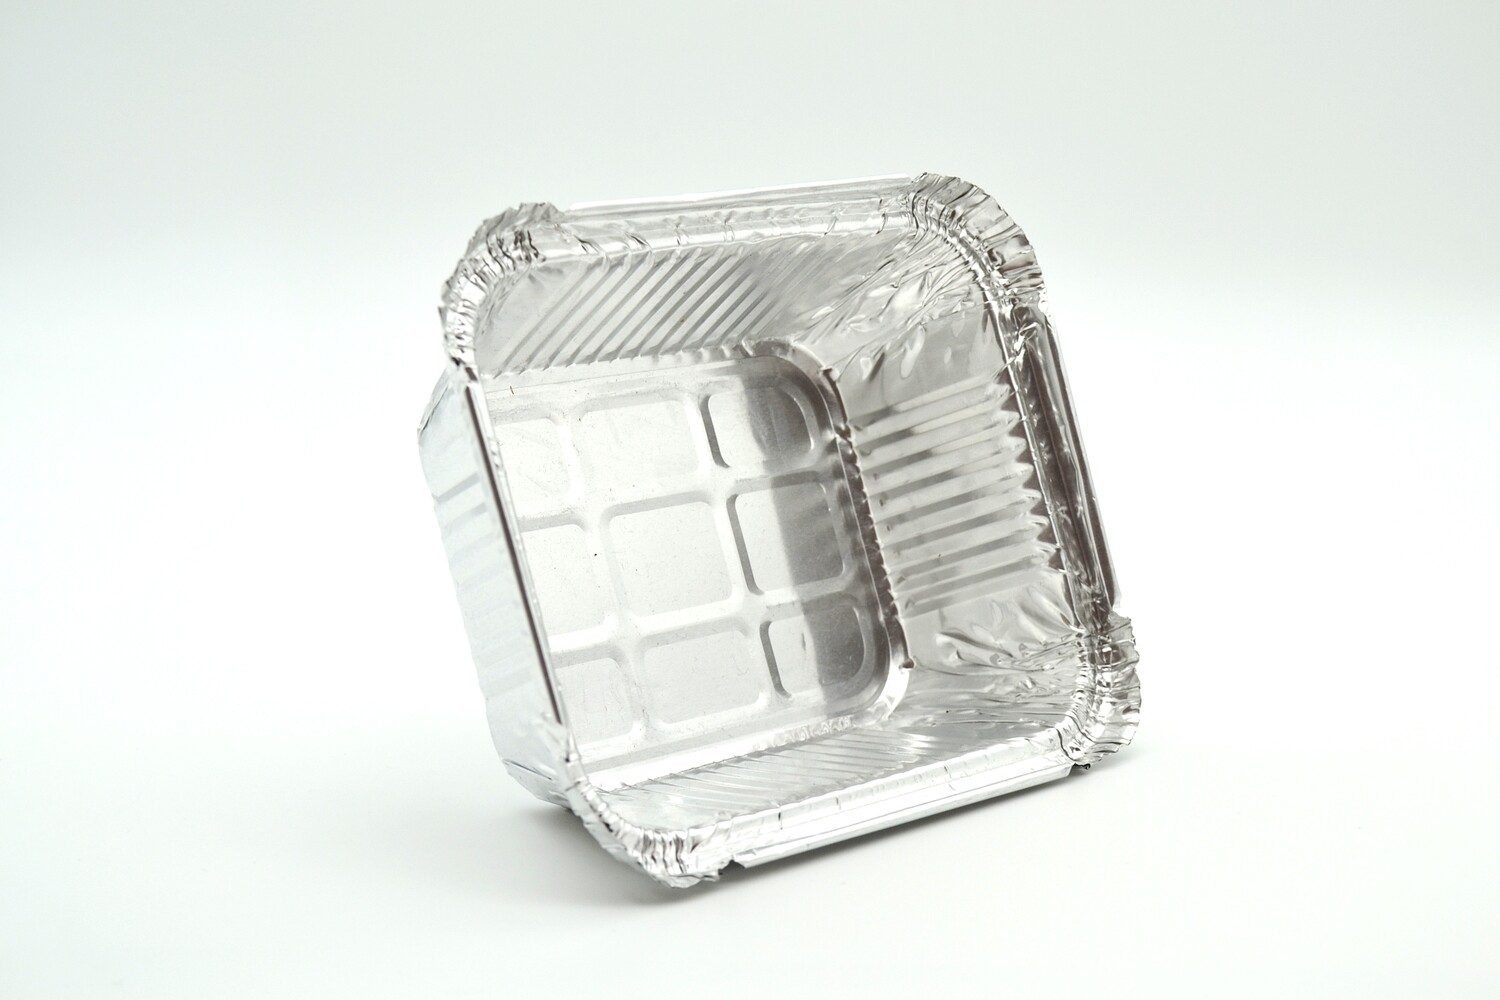 Foil Containers Small Lasagna 465 ml (Qty 50)